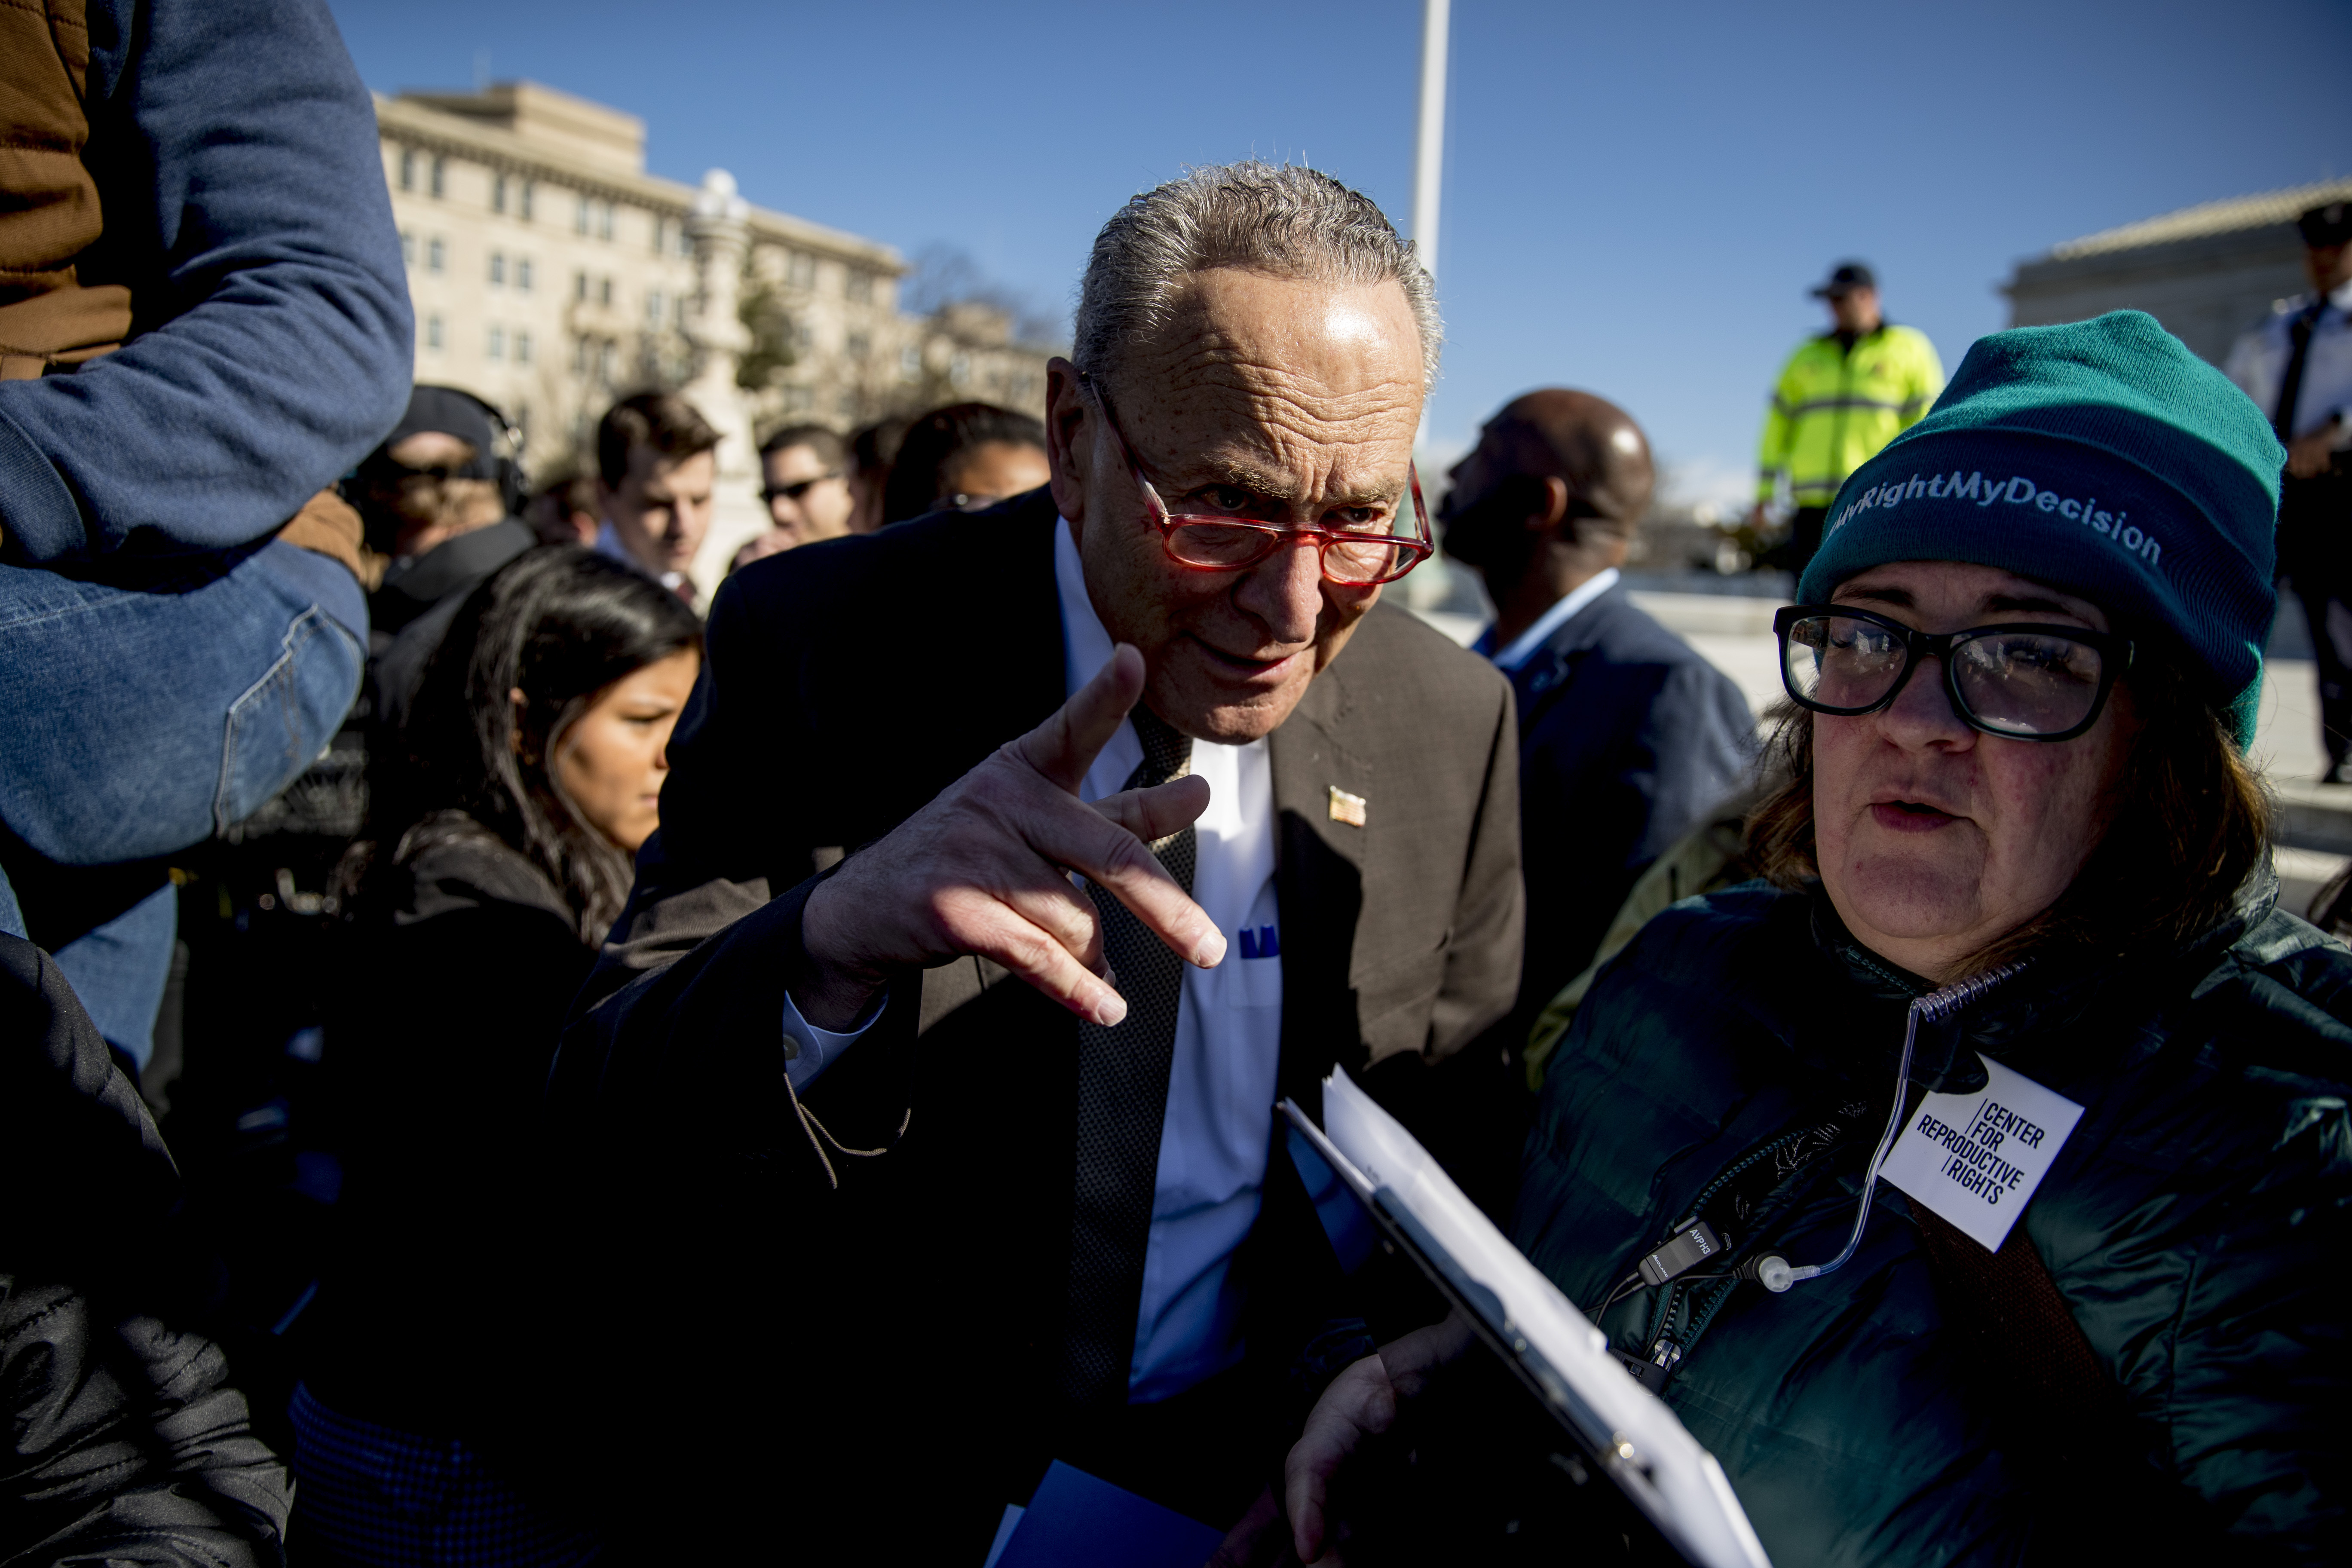 Senate Minority Leader Sen. Chuck Schumer of N.Y. arrives to speak to abortion rights demonstrators at a rally outside the Supreme Court, in Washington, on March 4, 2020.